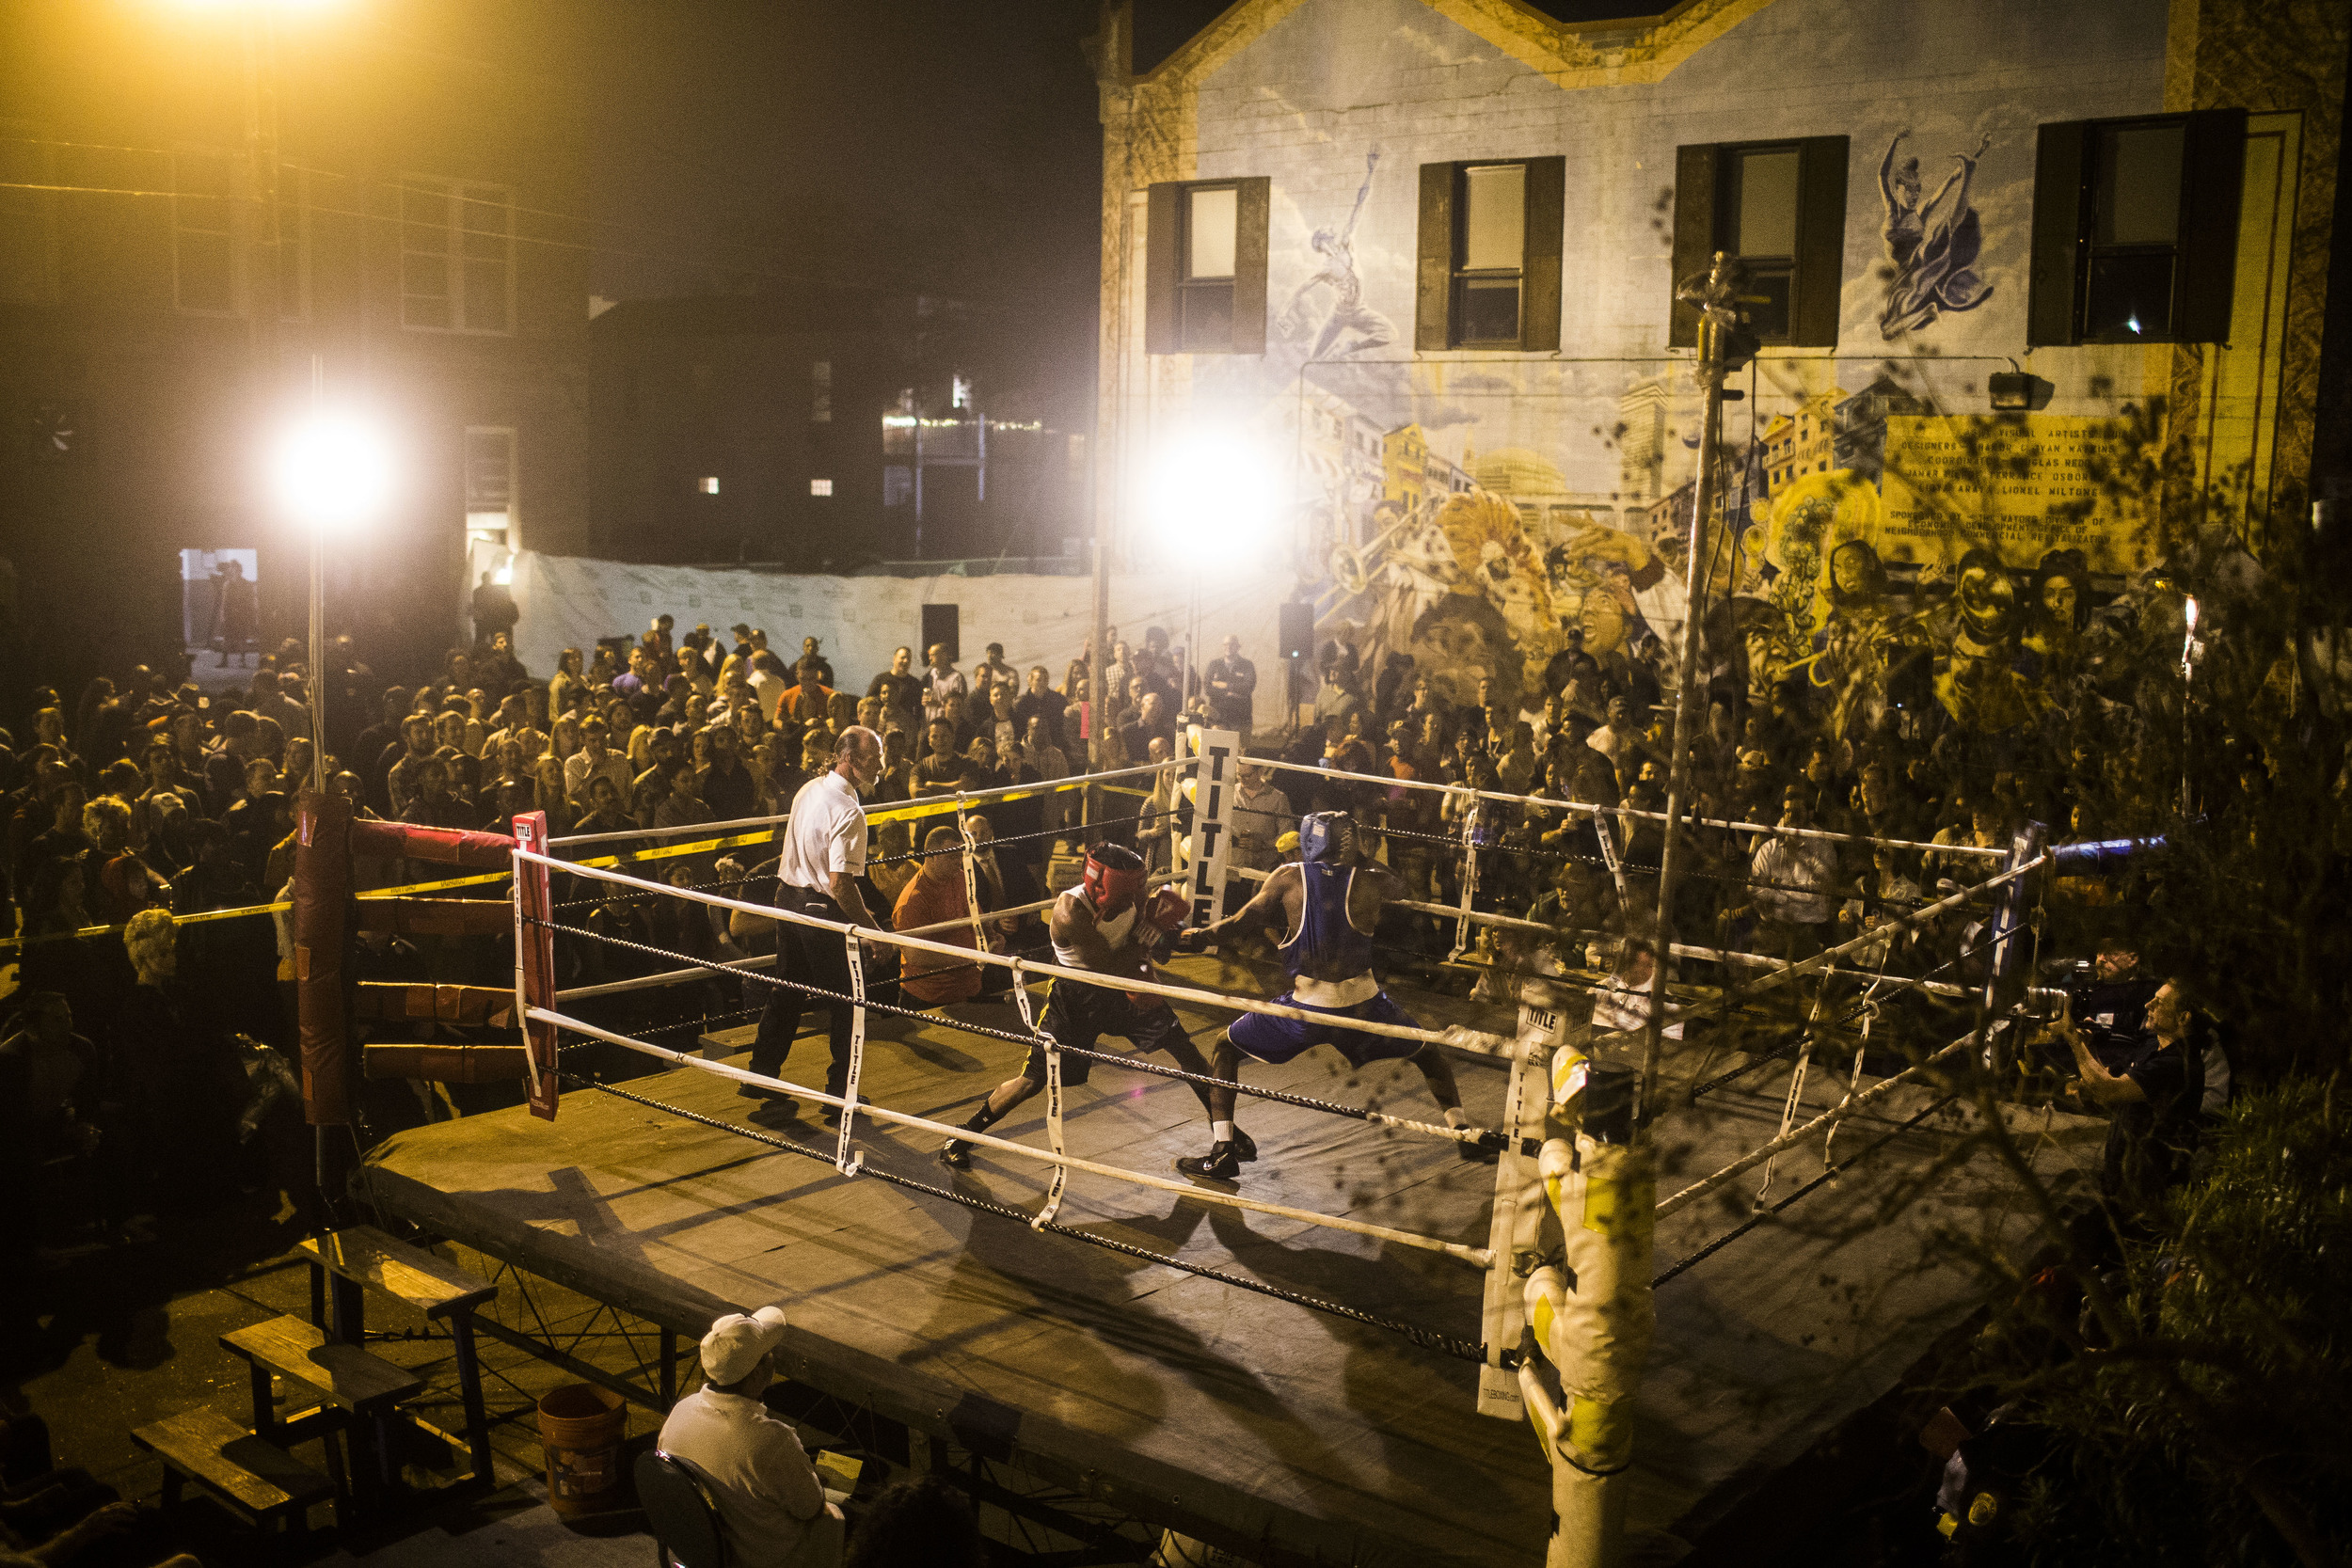 'Friday night fight', an amateur street boxing league